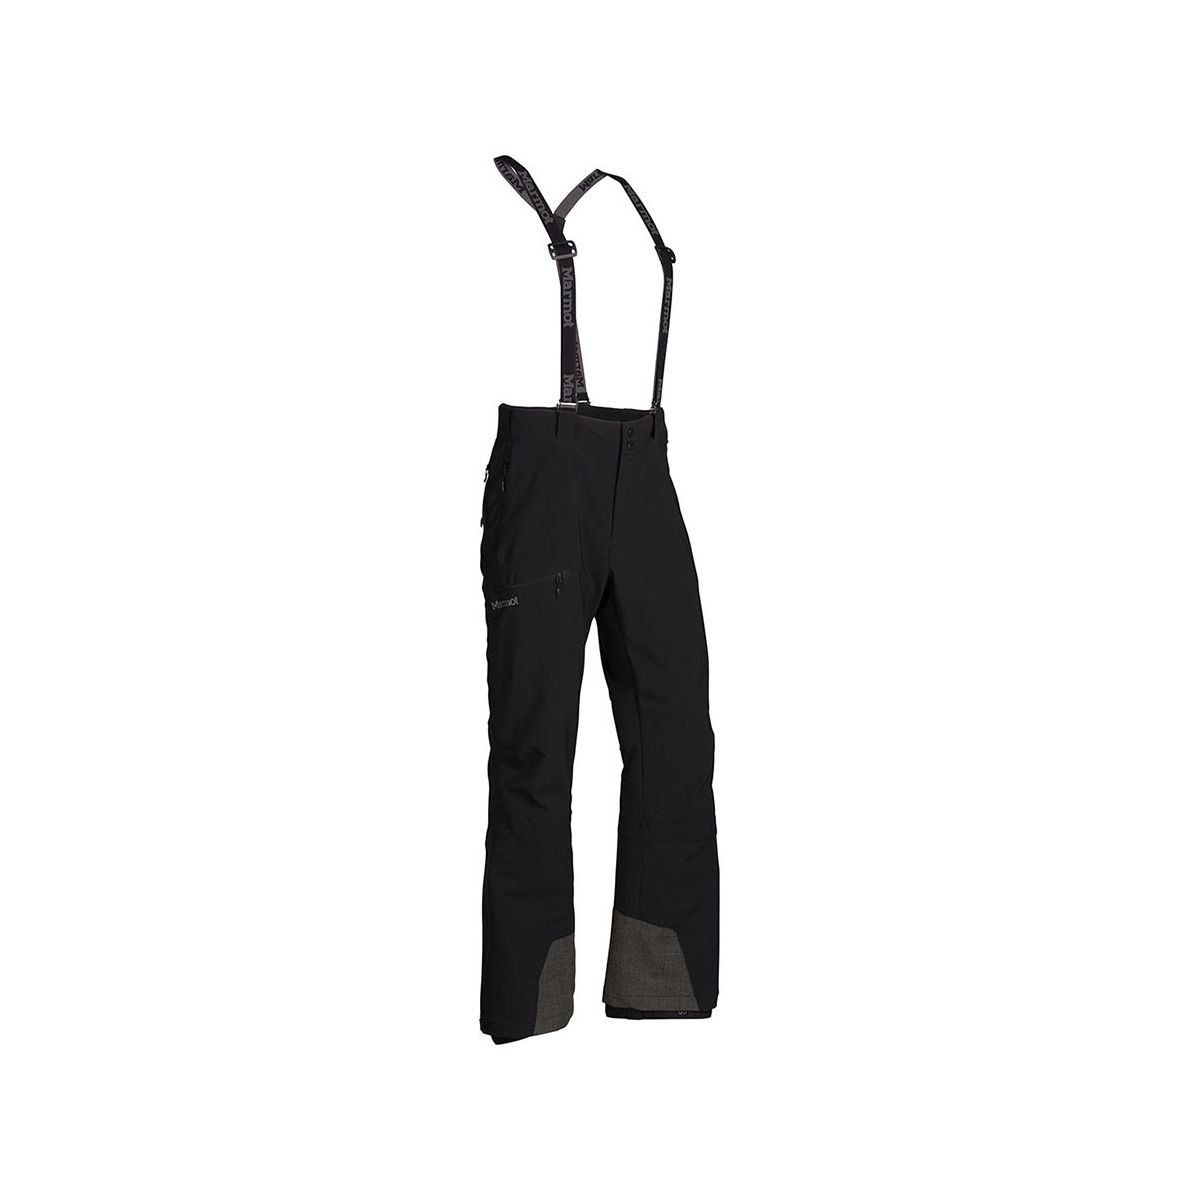 TALLA 38. Marmot - Pro Tour Pants, Color Negro, Talla 38